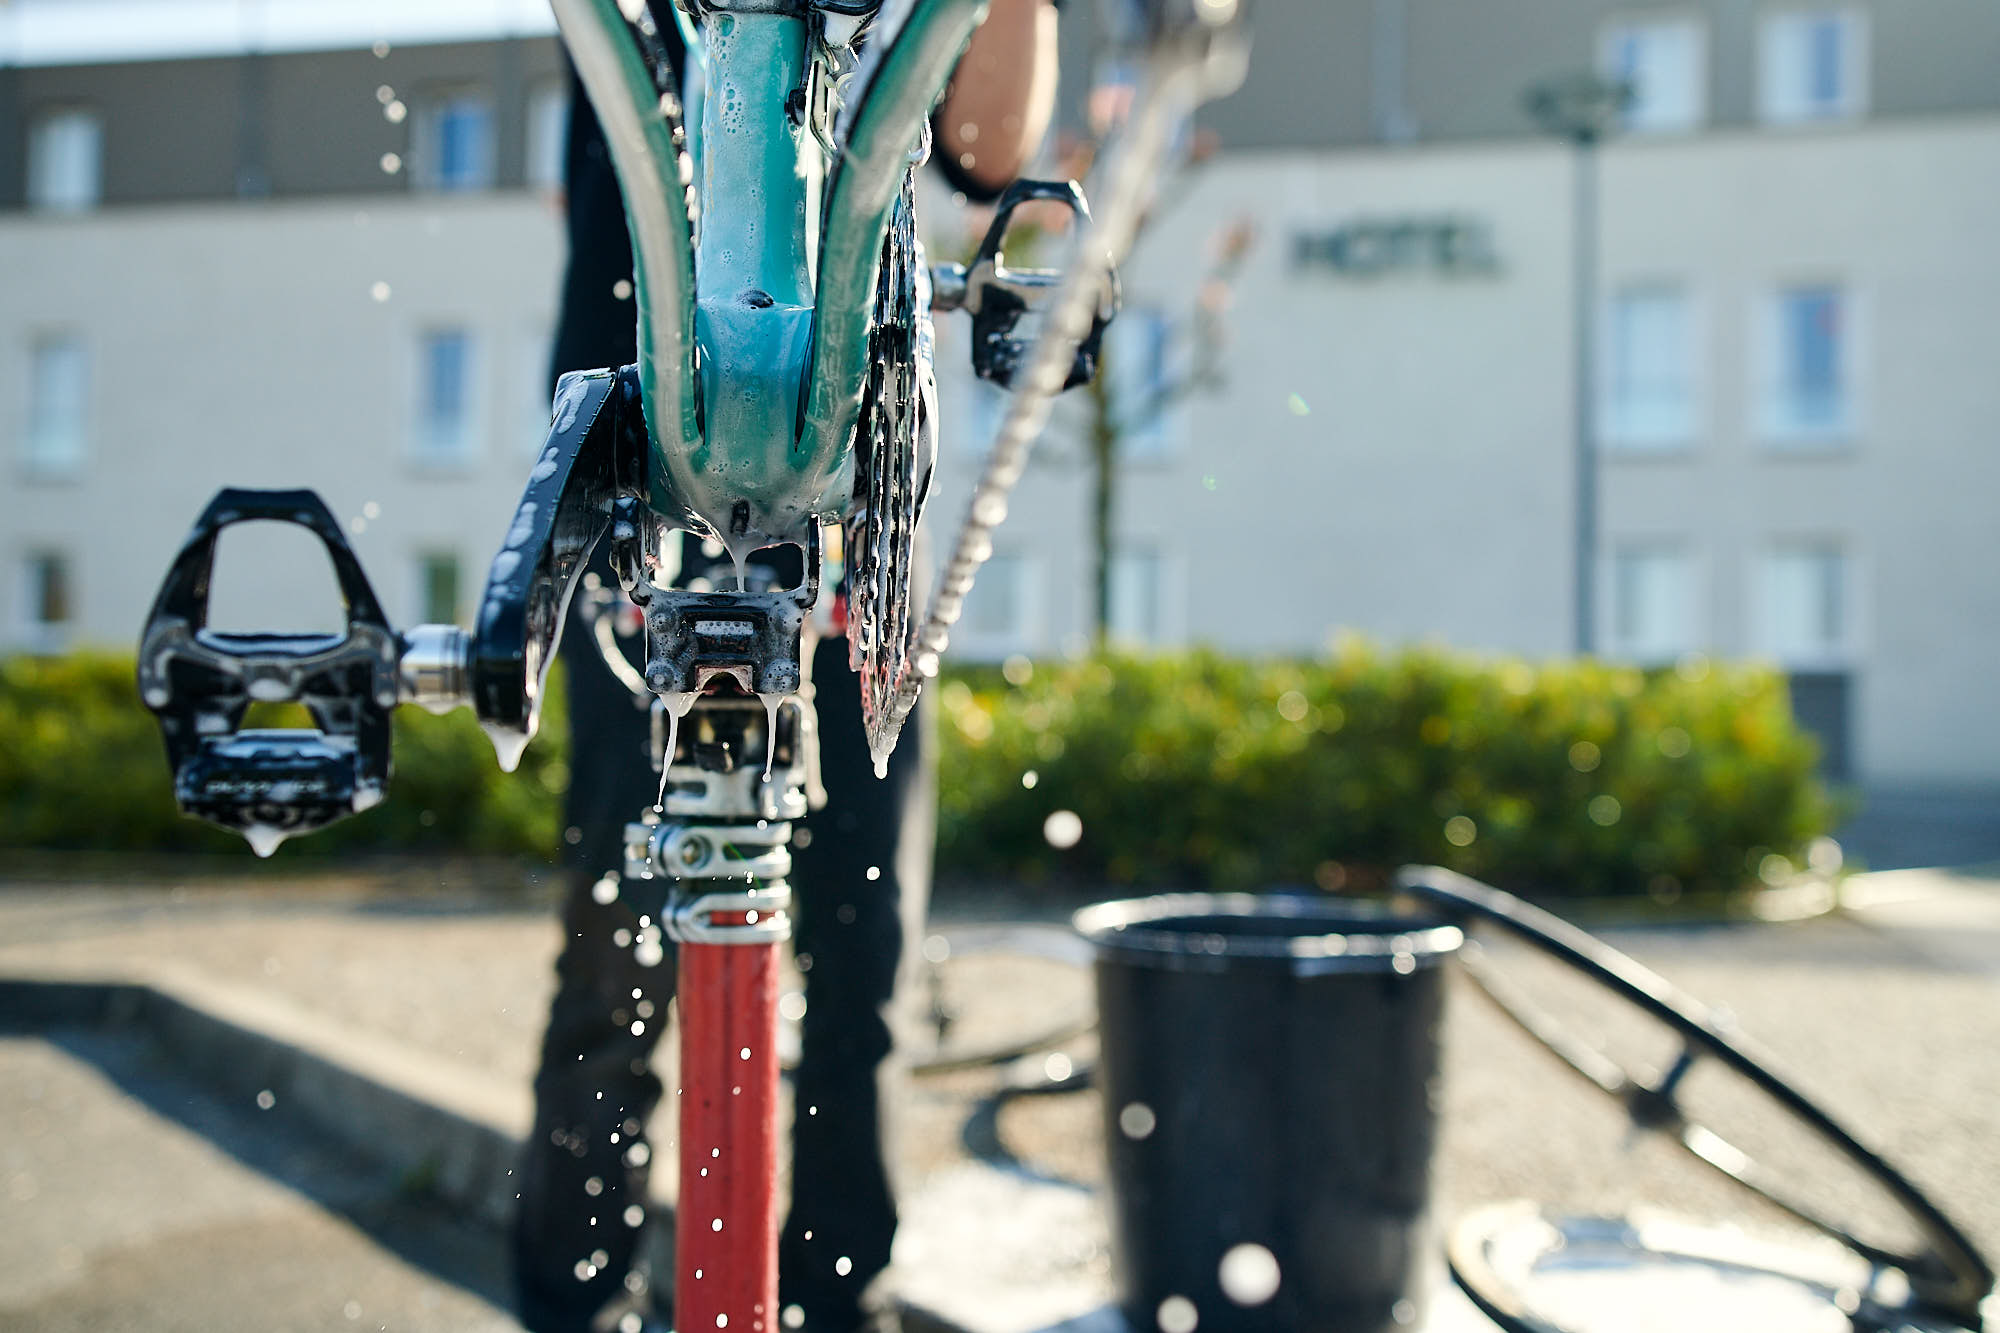 Bike being washed before Paris-Roubaix in Compiegne